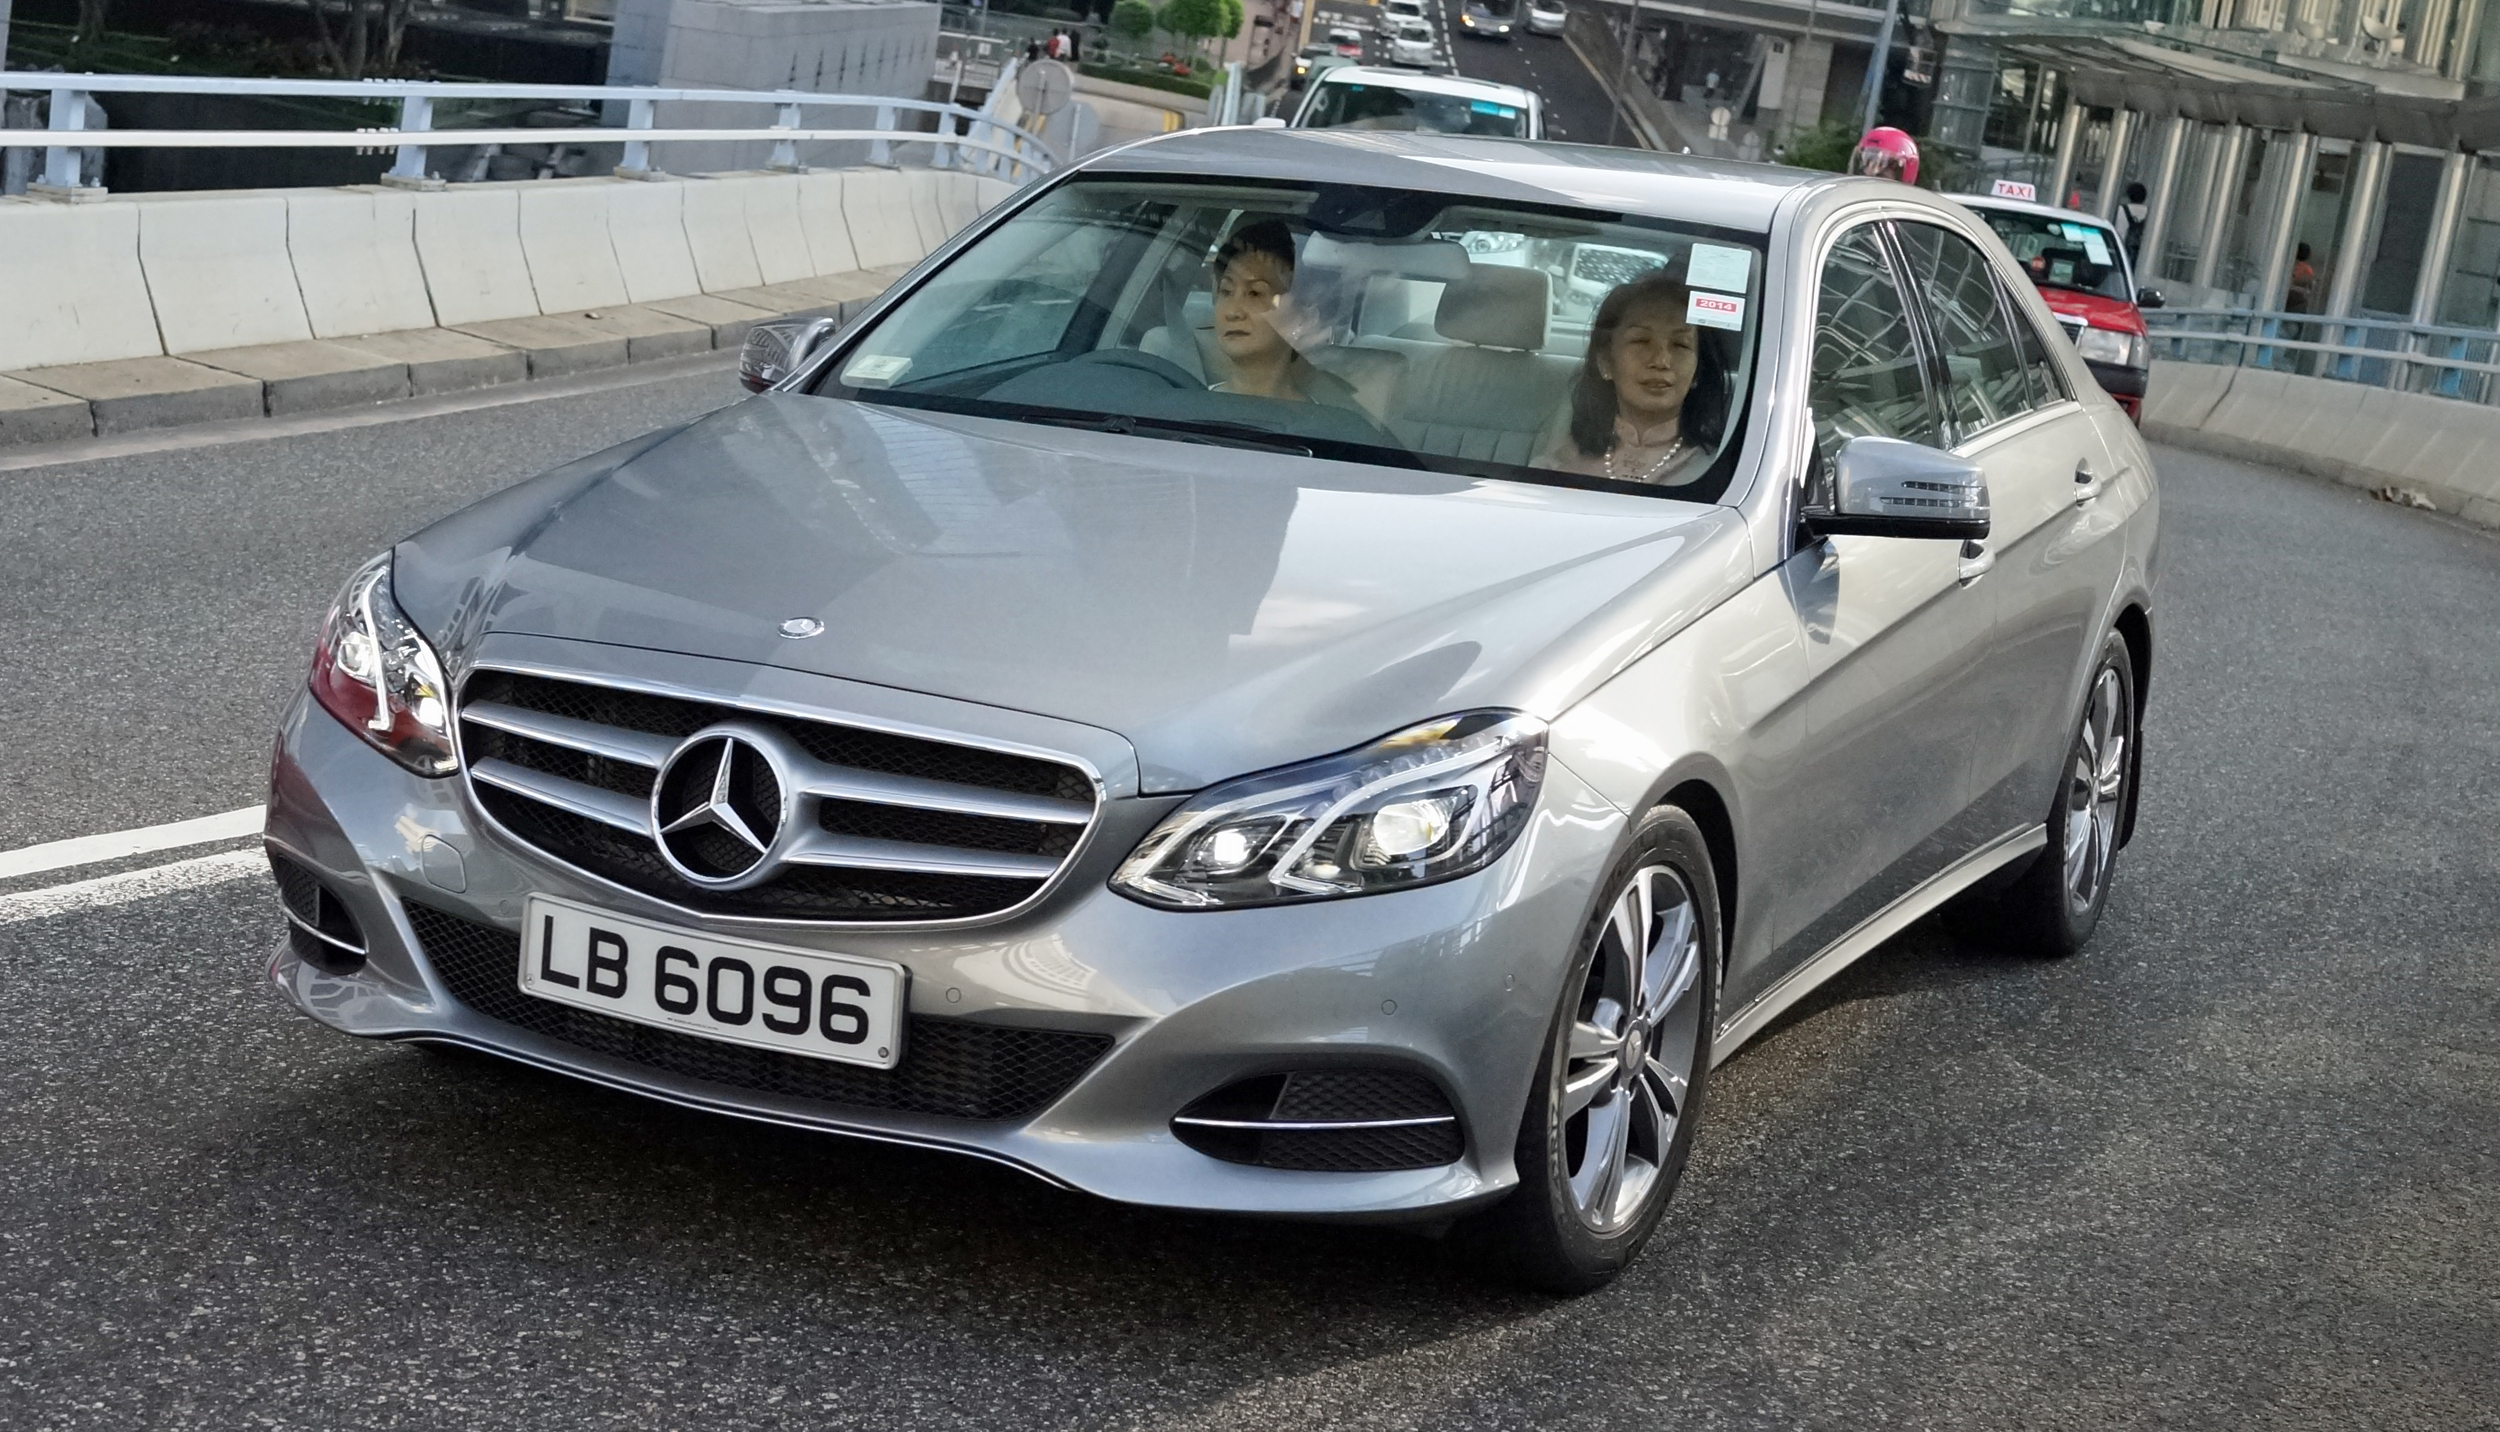 This is the more typical Hong Kong lady in the car (so to speak) they do look rather posh and refined and this model Mercedes is for them probably the family runabout!